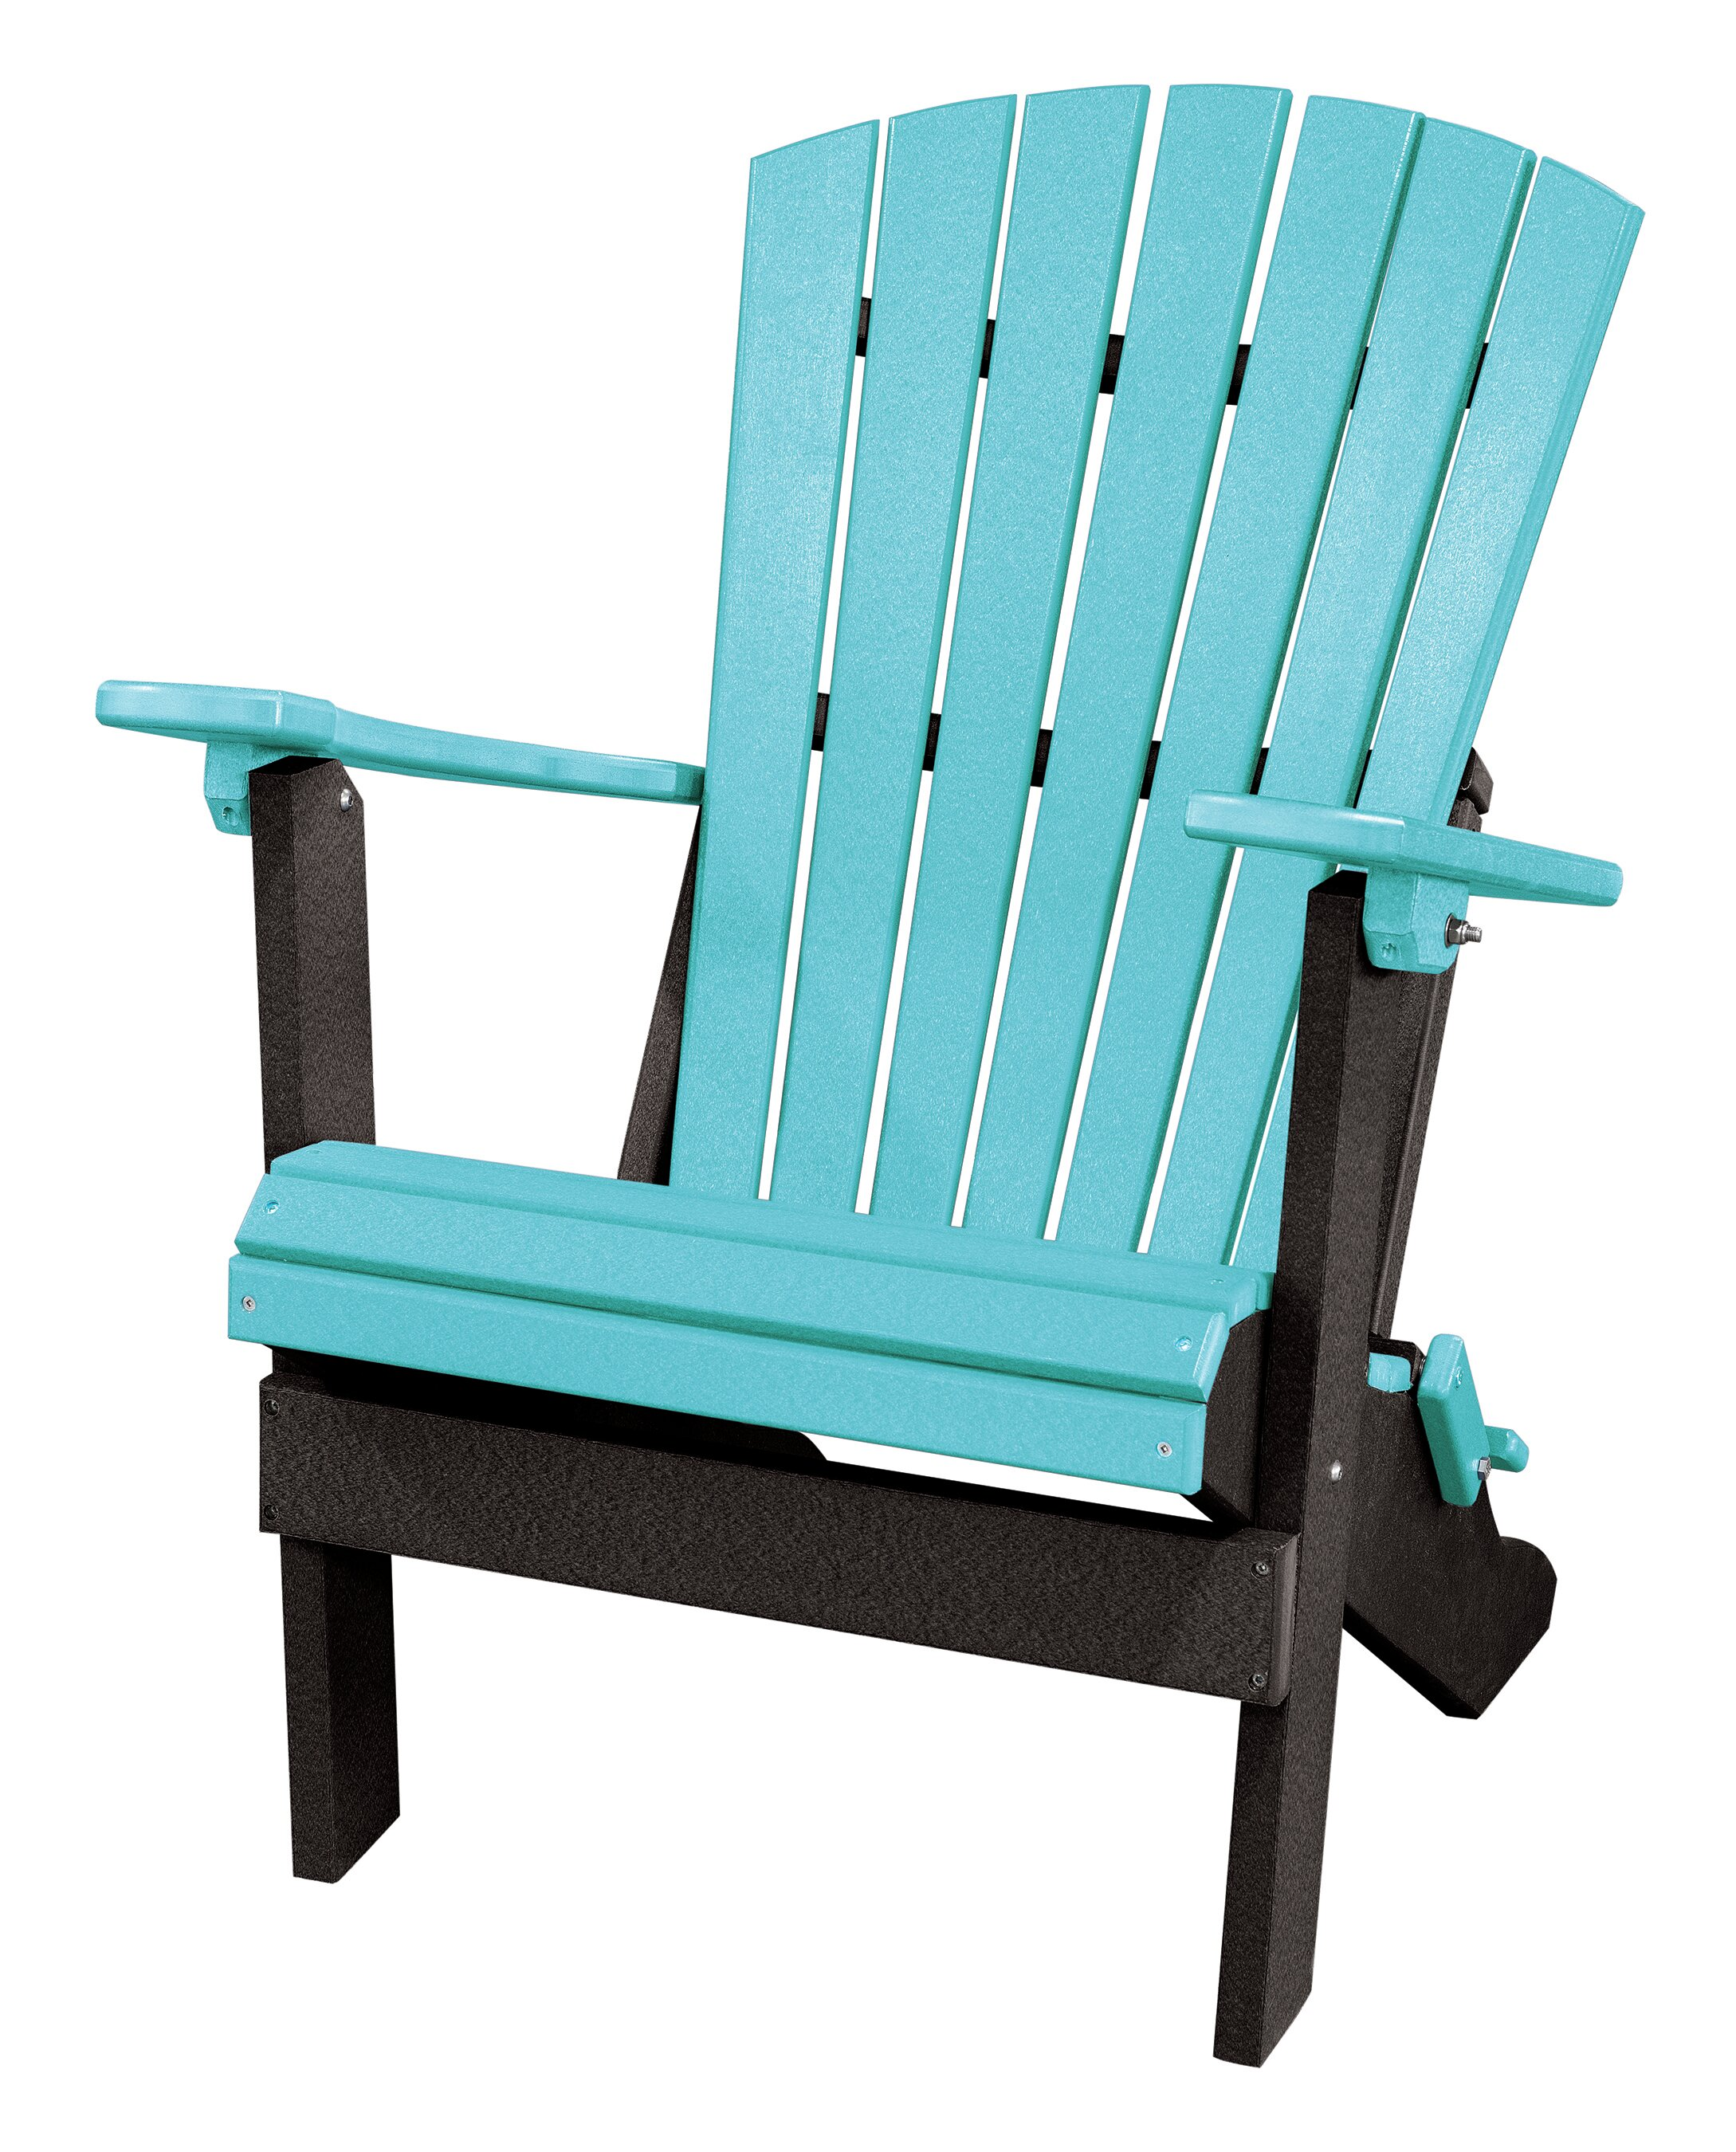 Red Barrel Studio Carla Back Wood Folding Adirondack Chair | Wayfair